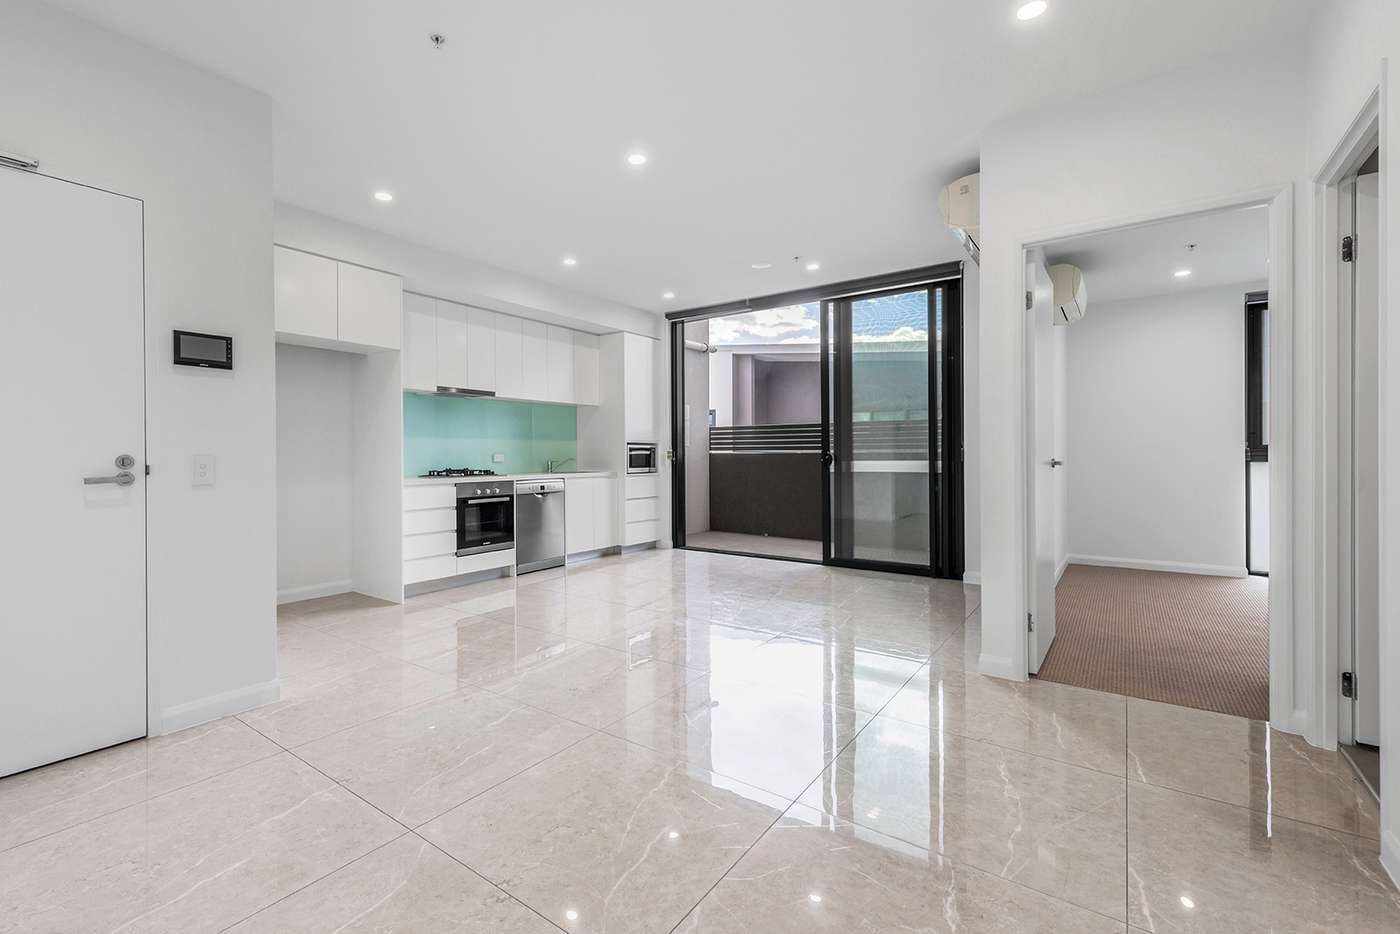 Sixth view of Homely apartment listing, 2103/181 Clarence Rd, Indooroopilly QLD 4068